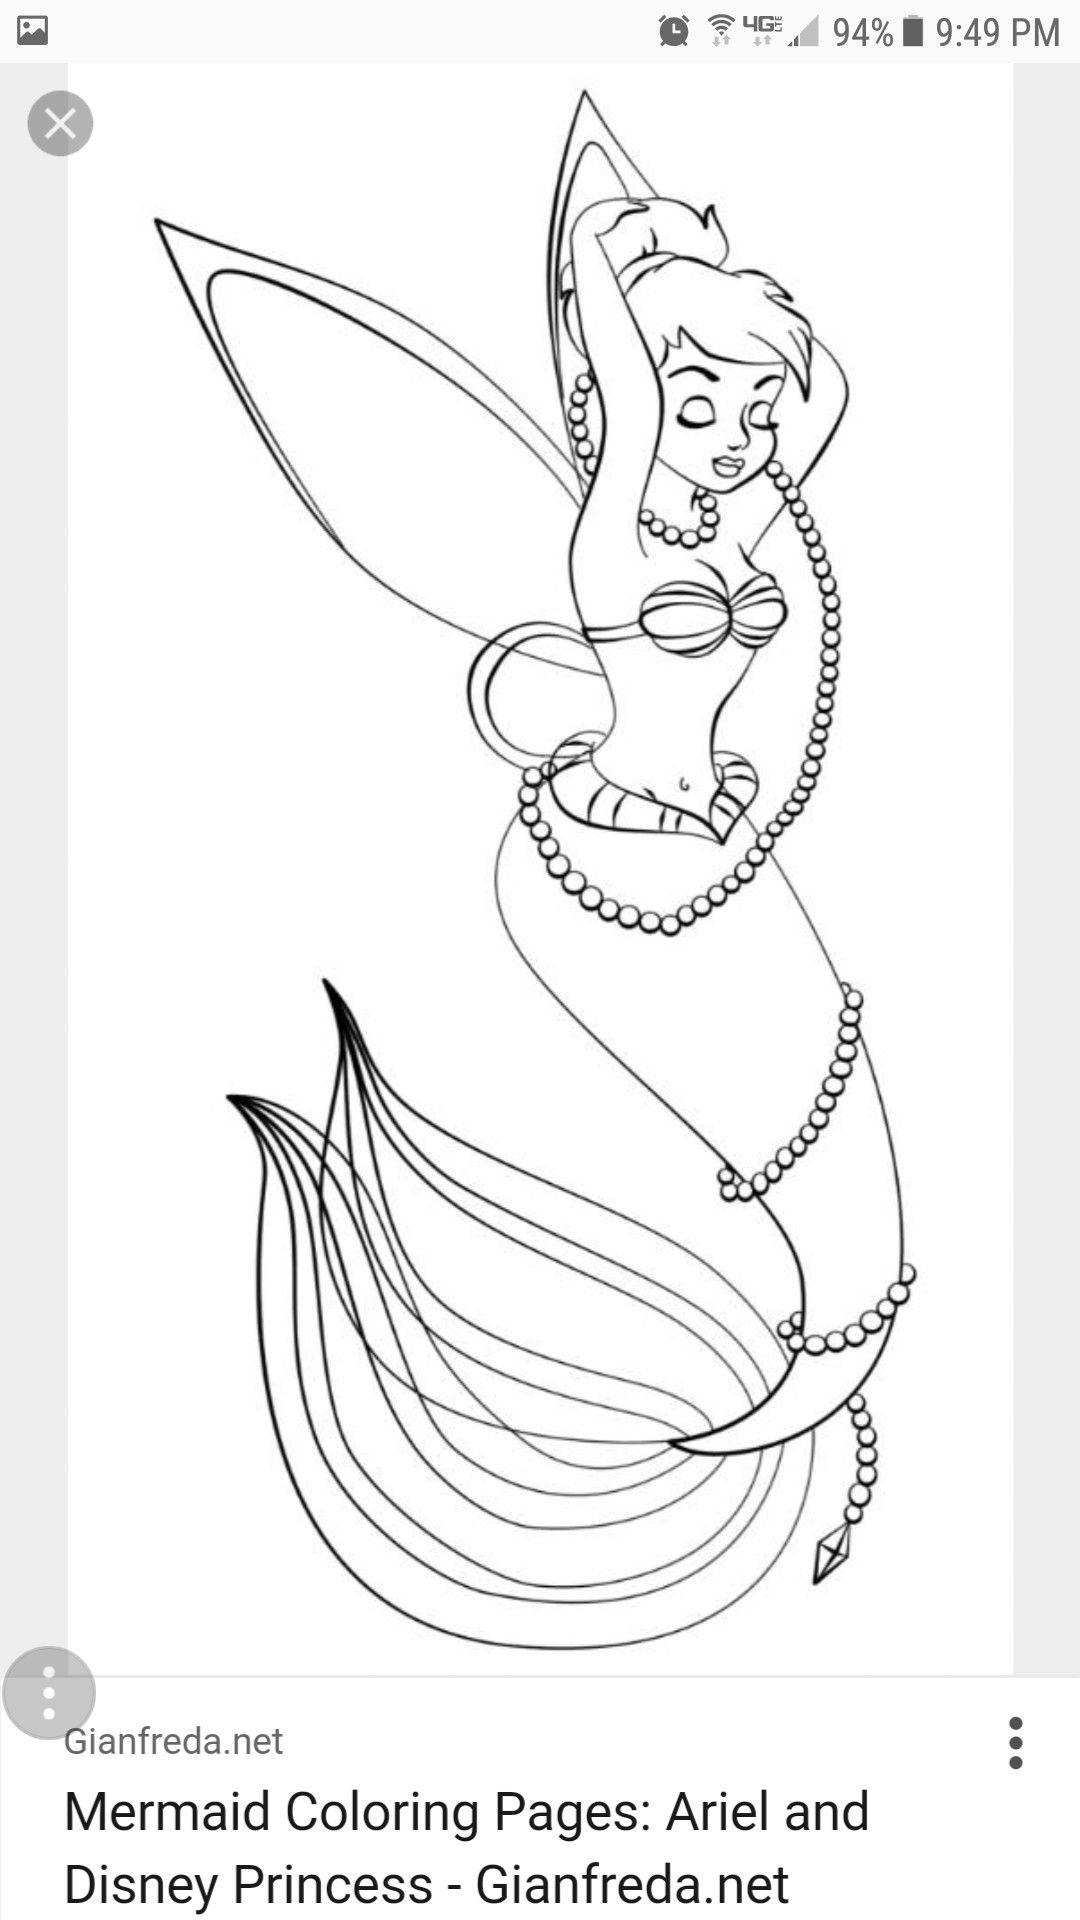 Pin by kayleigh caldwell on grace colouring pinterest coloring